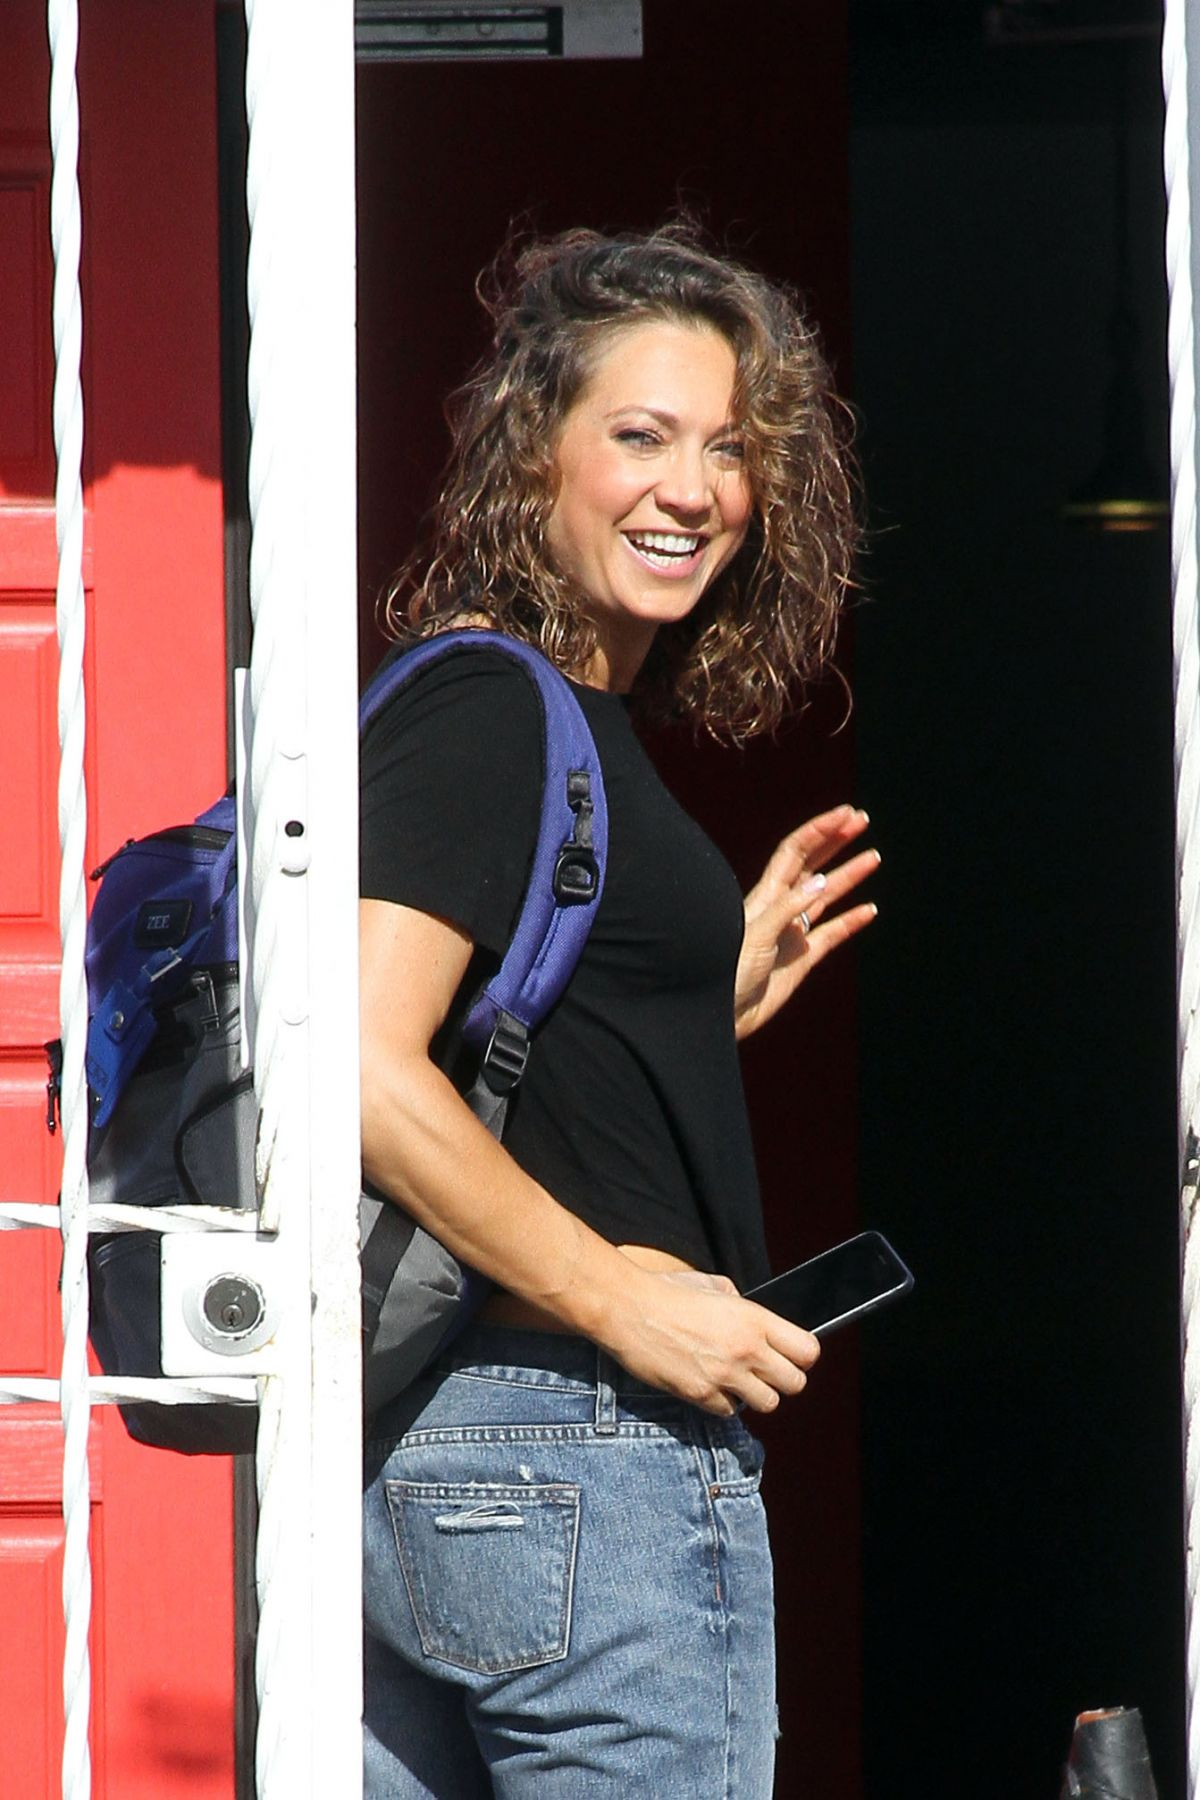 GINGER ZEE at DWTS Studio in Hollywood 04/19/2016